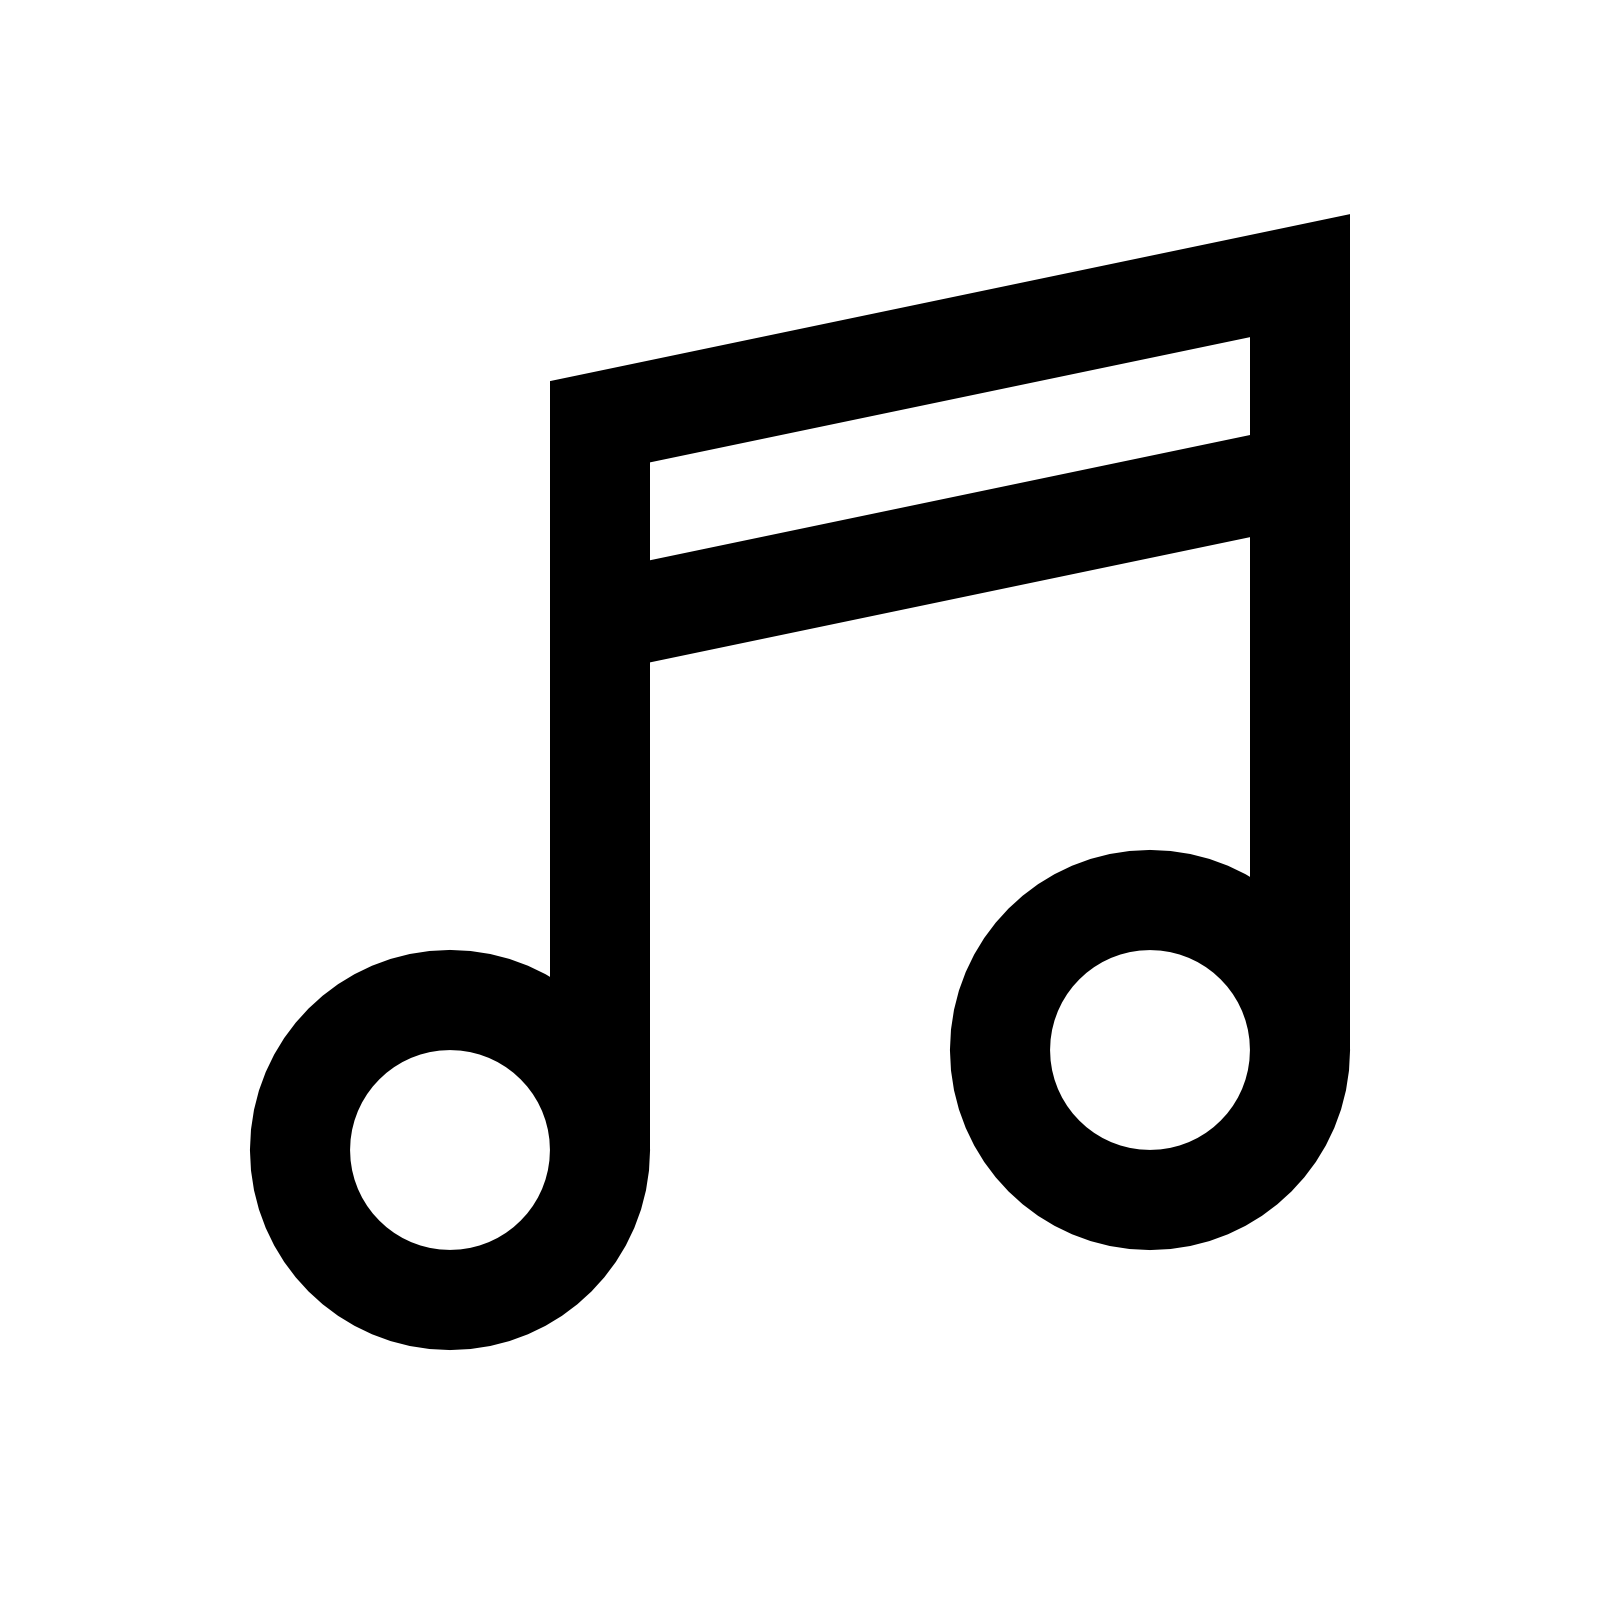 Microphone and music notes png. Collection of drawing